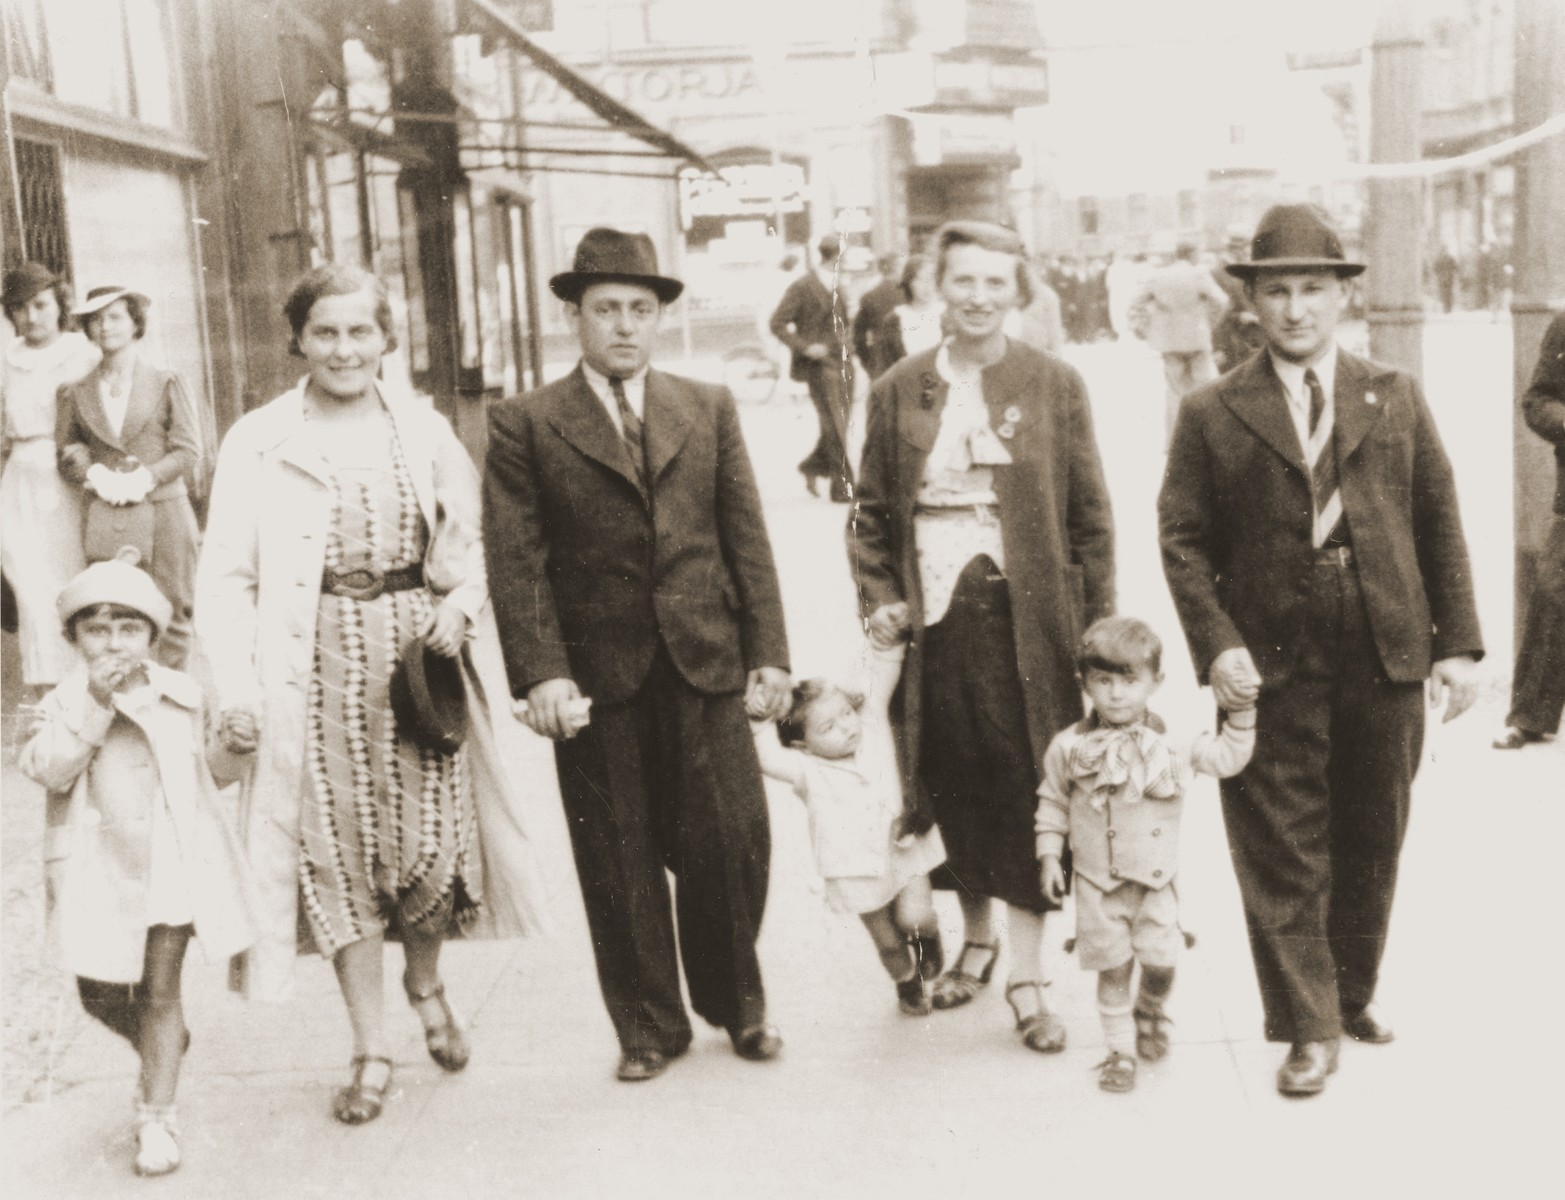 The Goldblum family taking a Sunday stroll on the streets of Katowice.    Salusia and Tola are holding hands on the left, while Izak and Wolf are on the right.